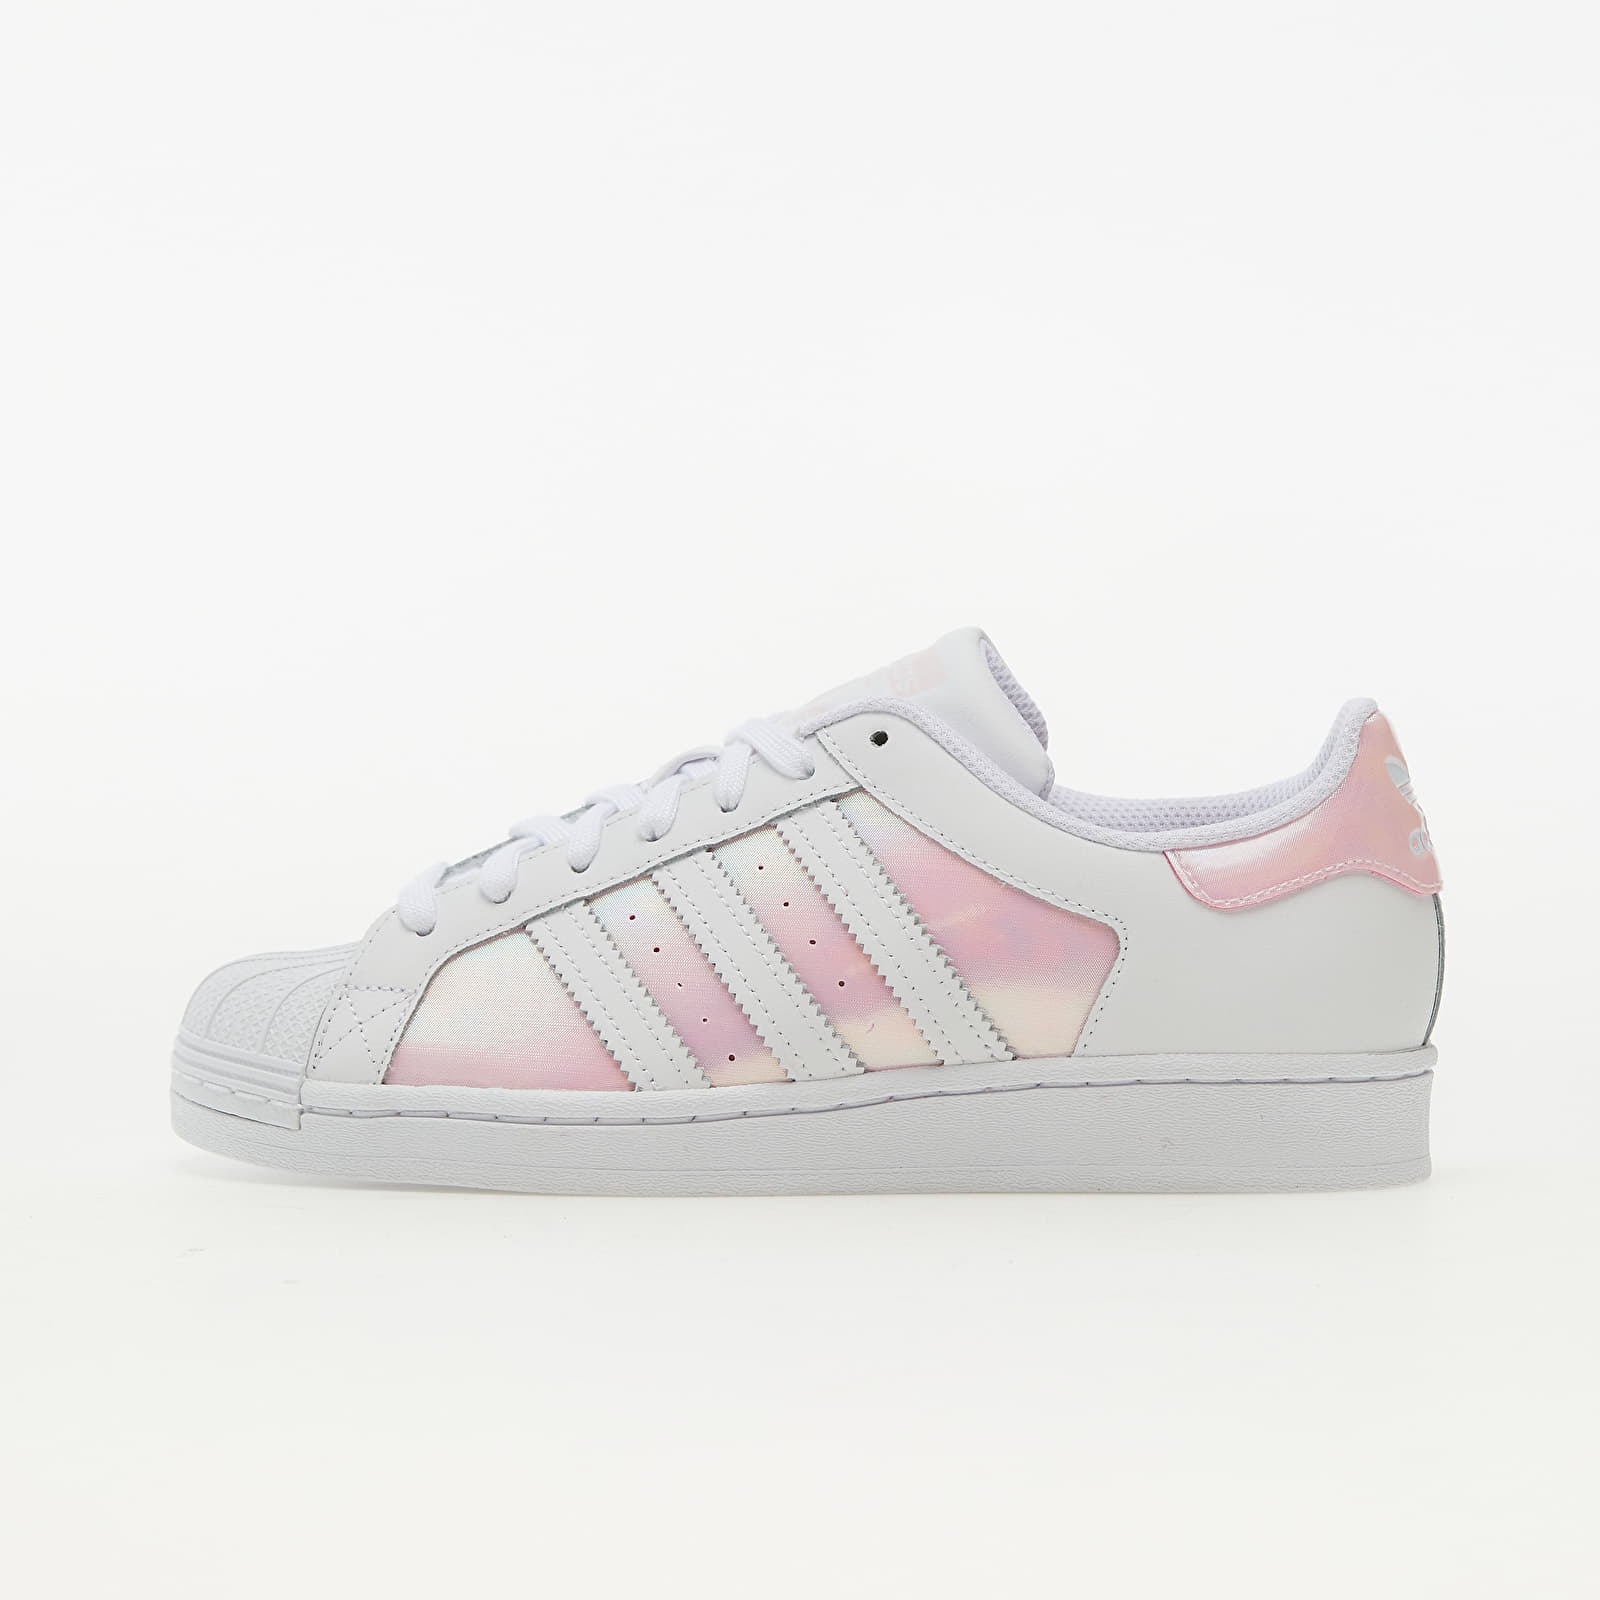 adidas Superstar W Ftw White/ Ftw White/ Clear Pink EUR 36 2/3